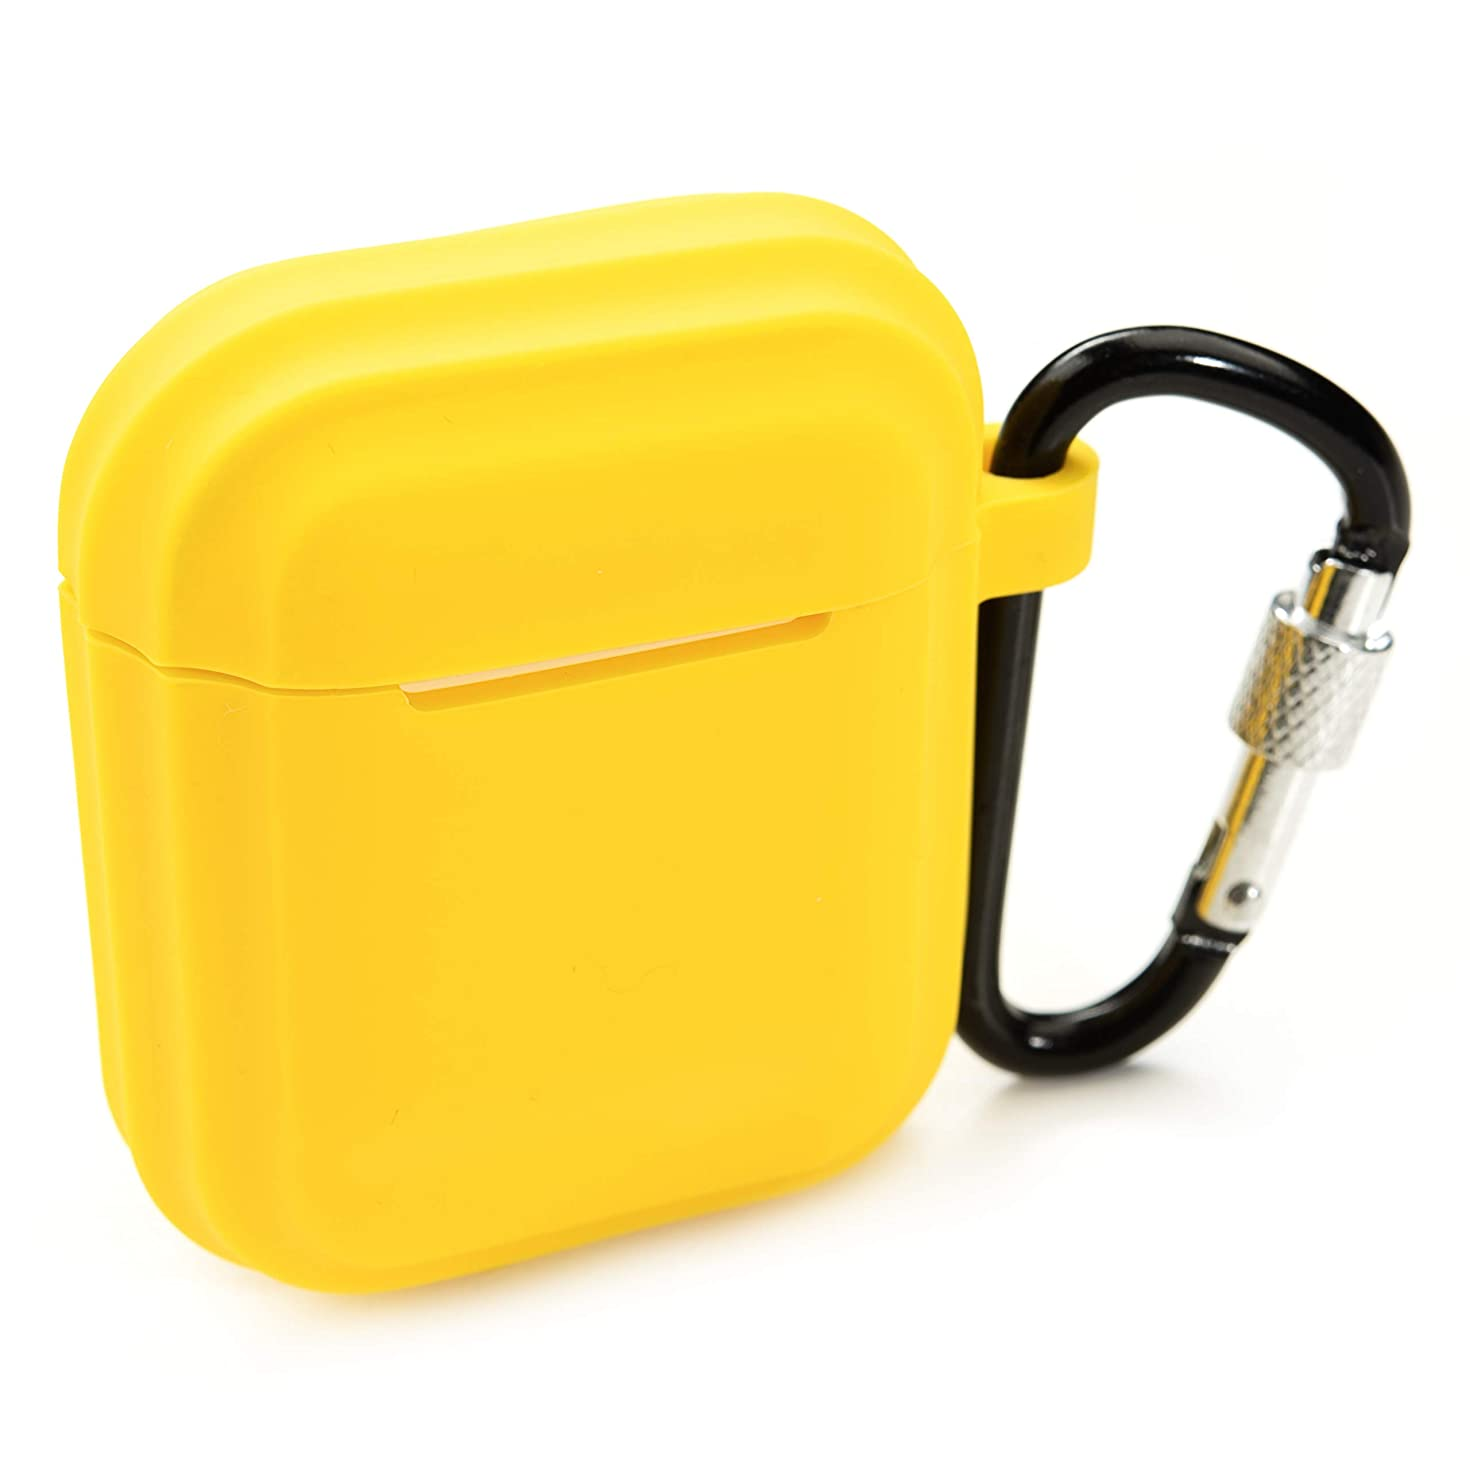 PeepCase AirPods Case Cover for AirPod 1 & 2 Yellow Shockproof with Wireless Charging Support and Keychain